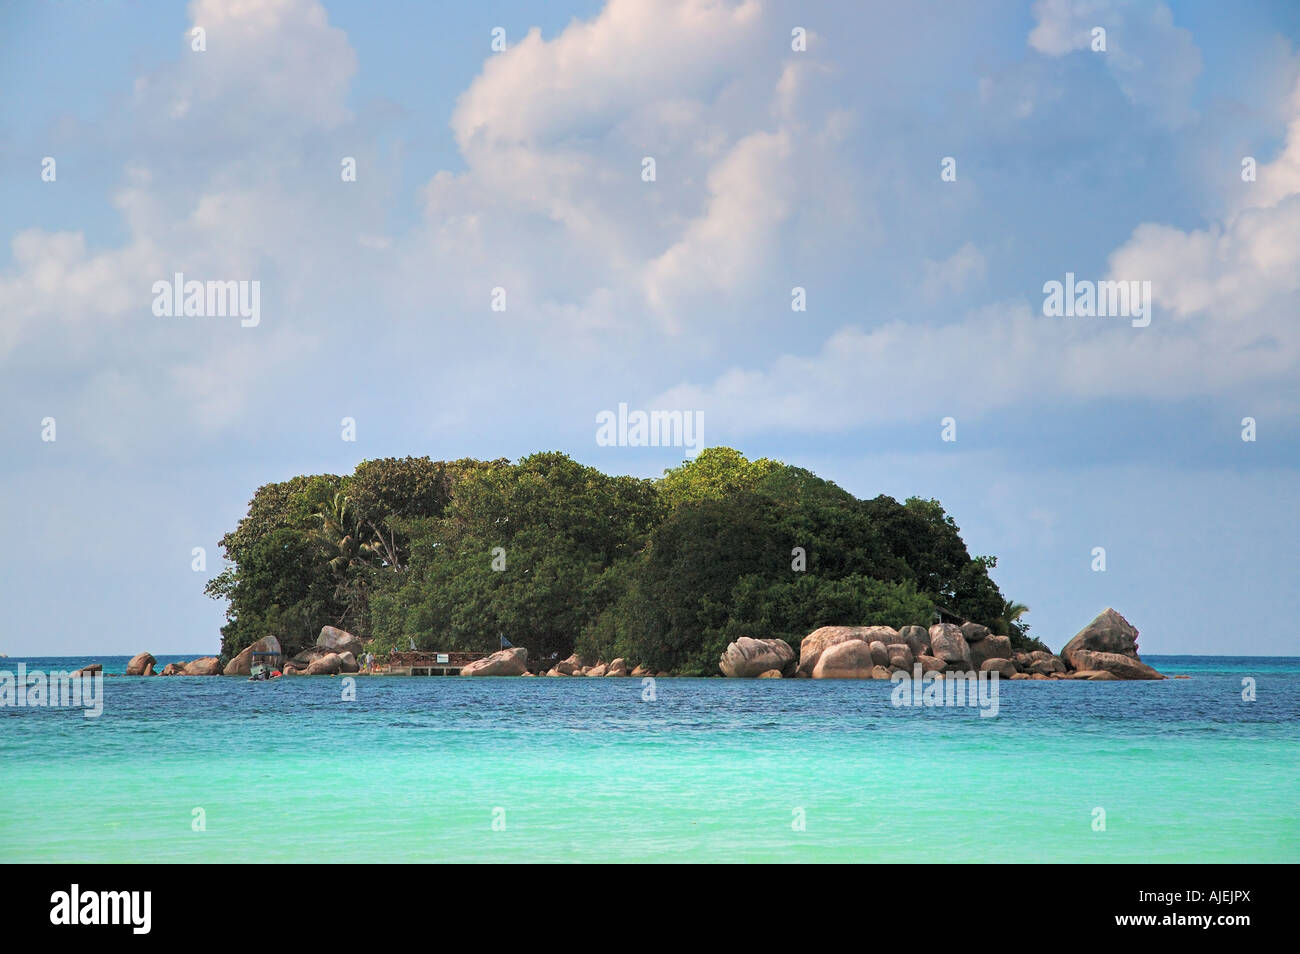 Tiny island covered in lush tropical vegetation Stock Photo